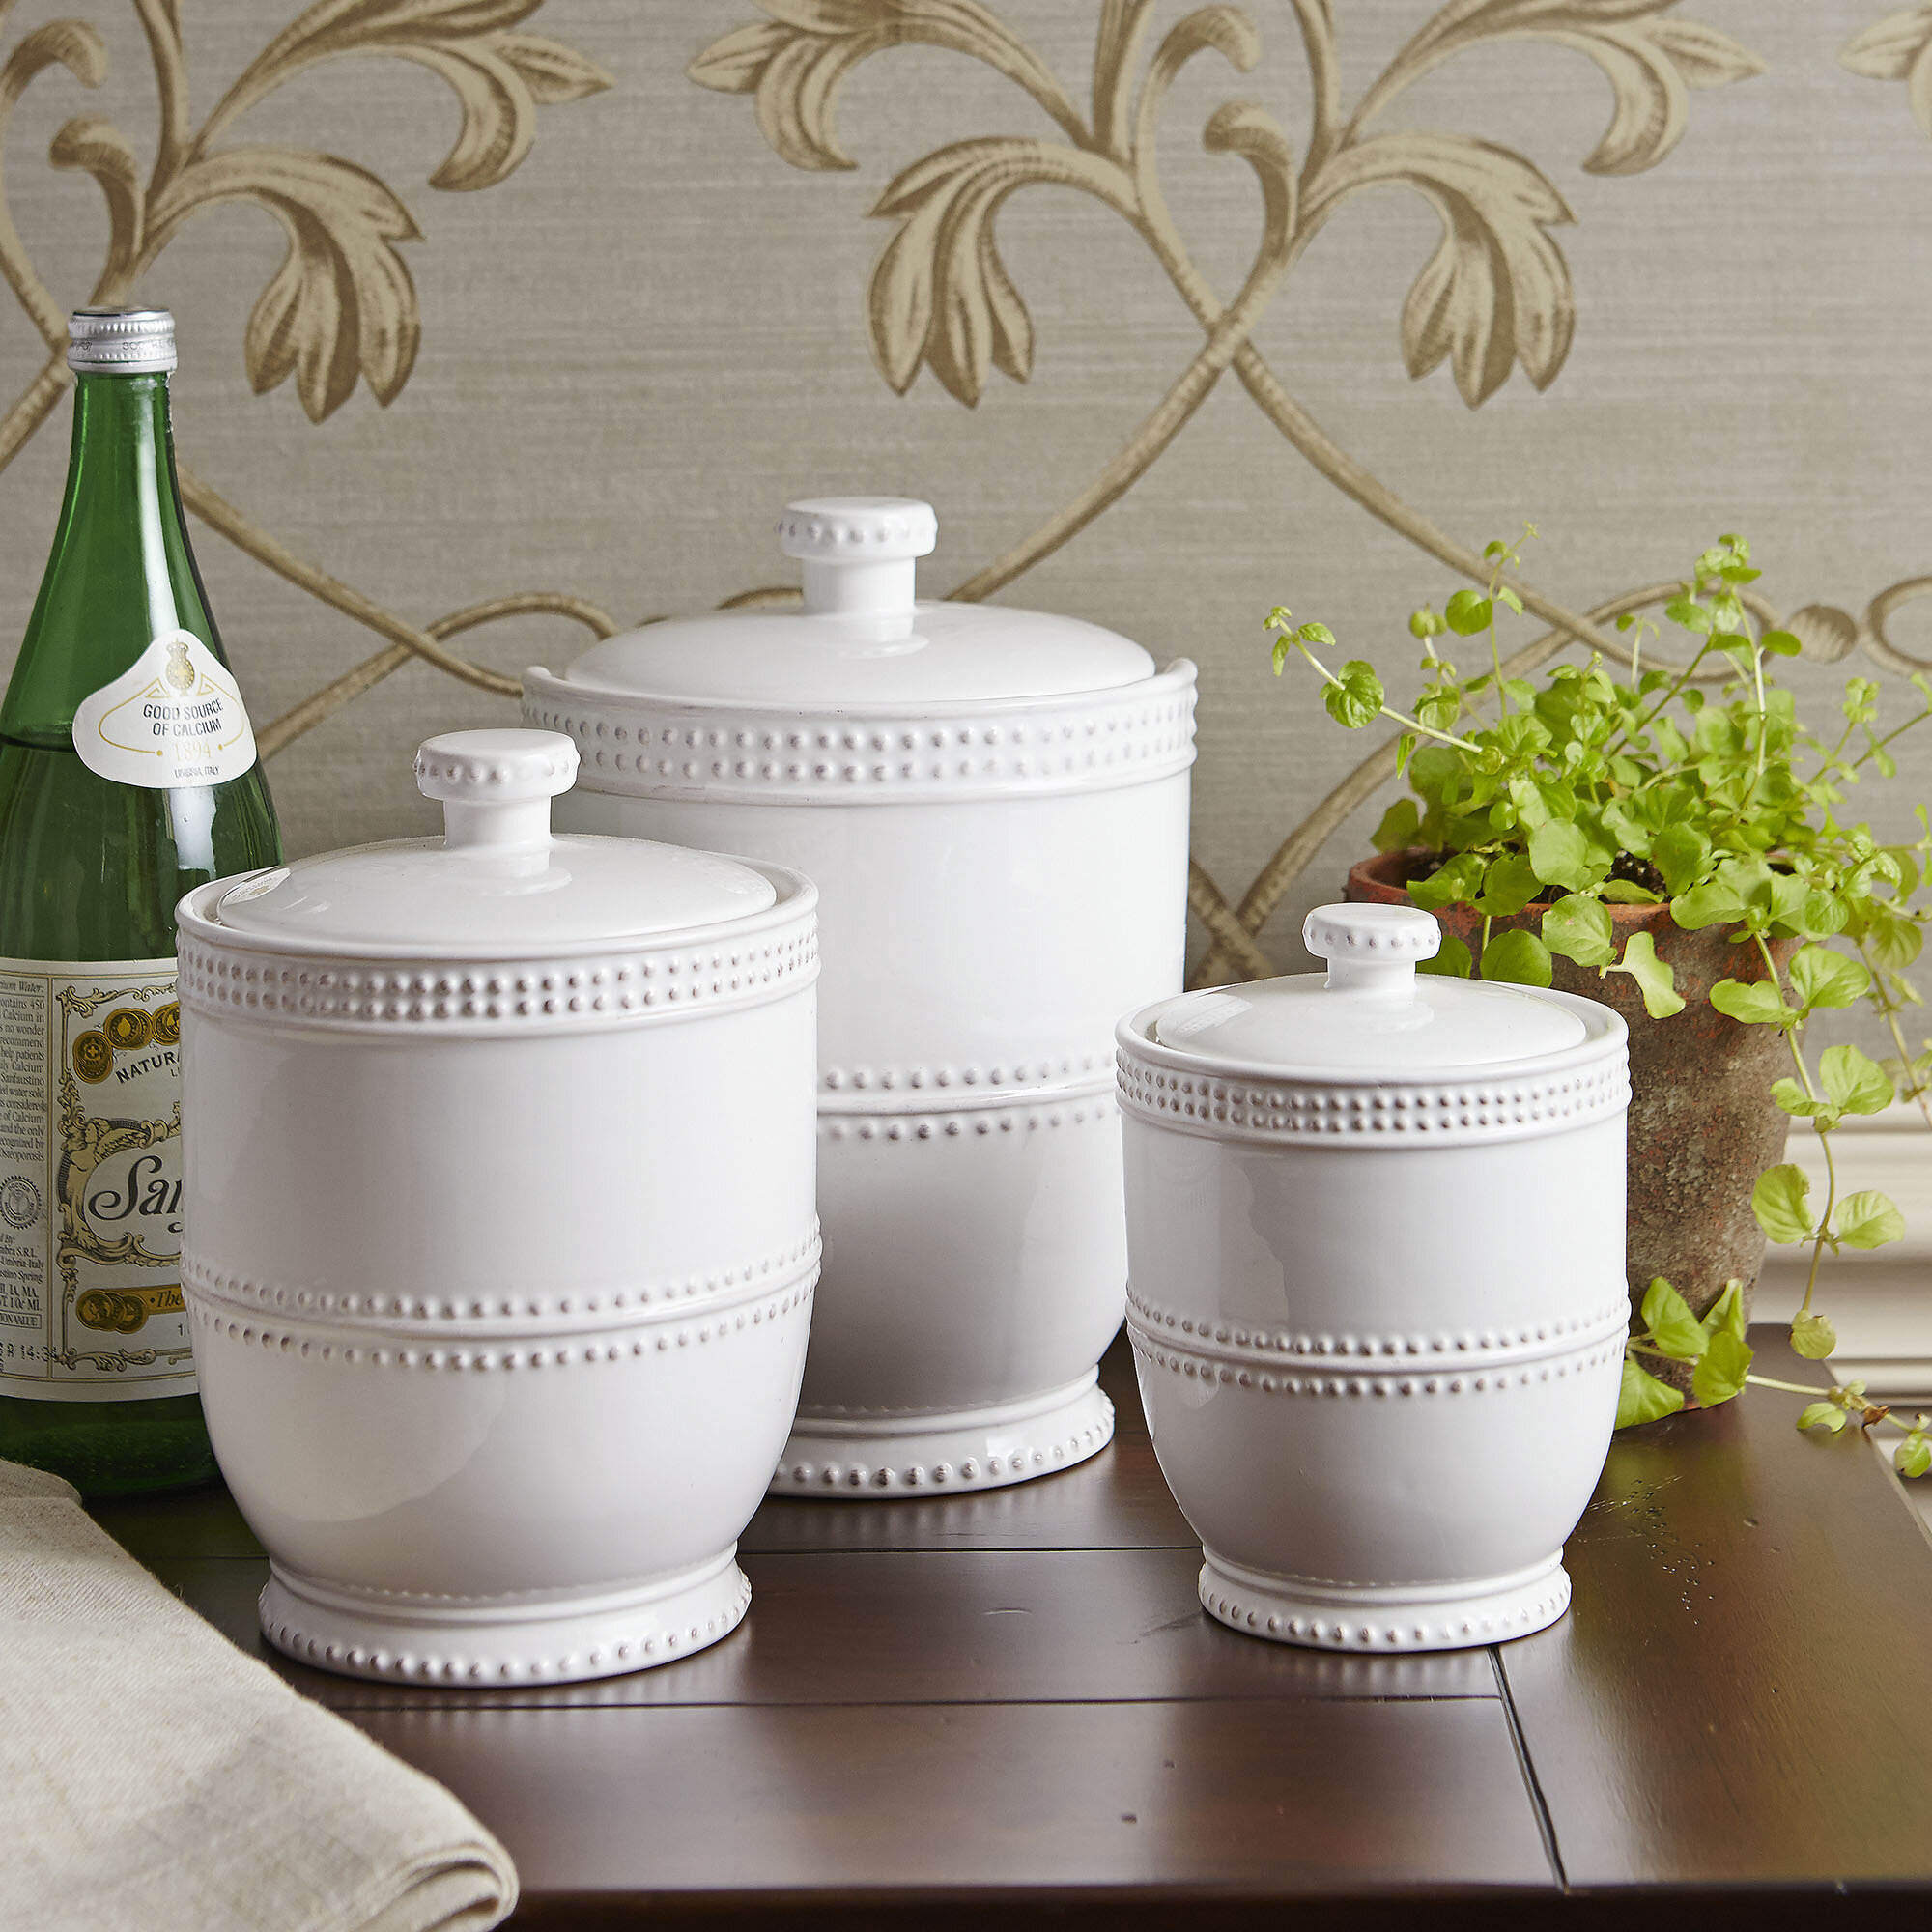 Decorative Kitchen Canisters Sets You Ll Love In 2021 Visualhunt